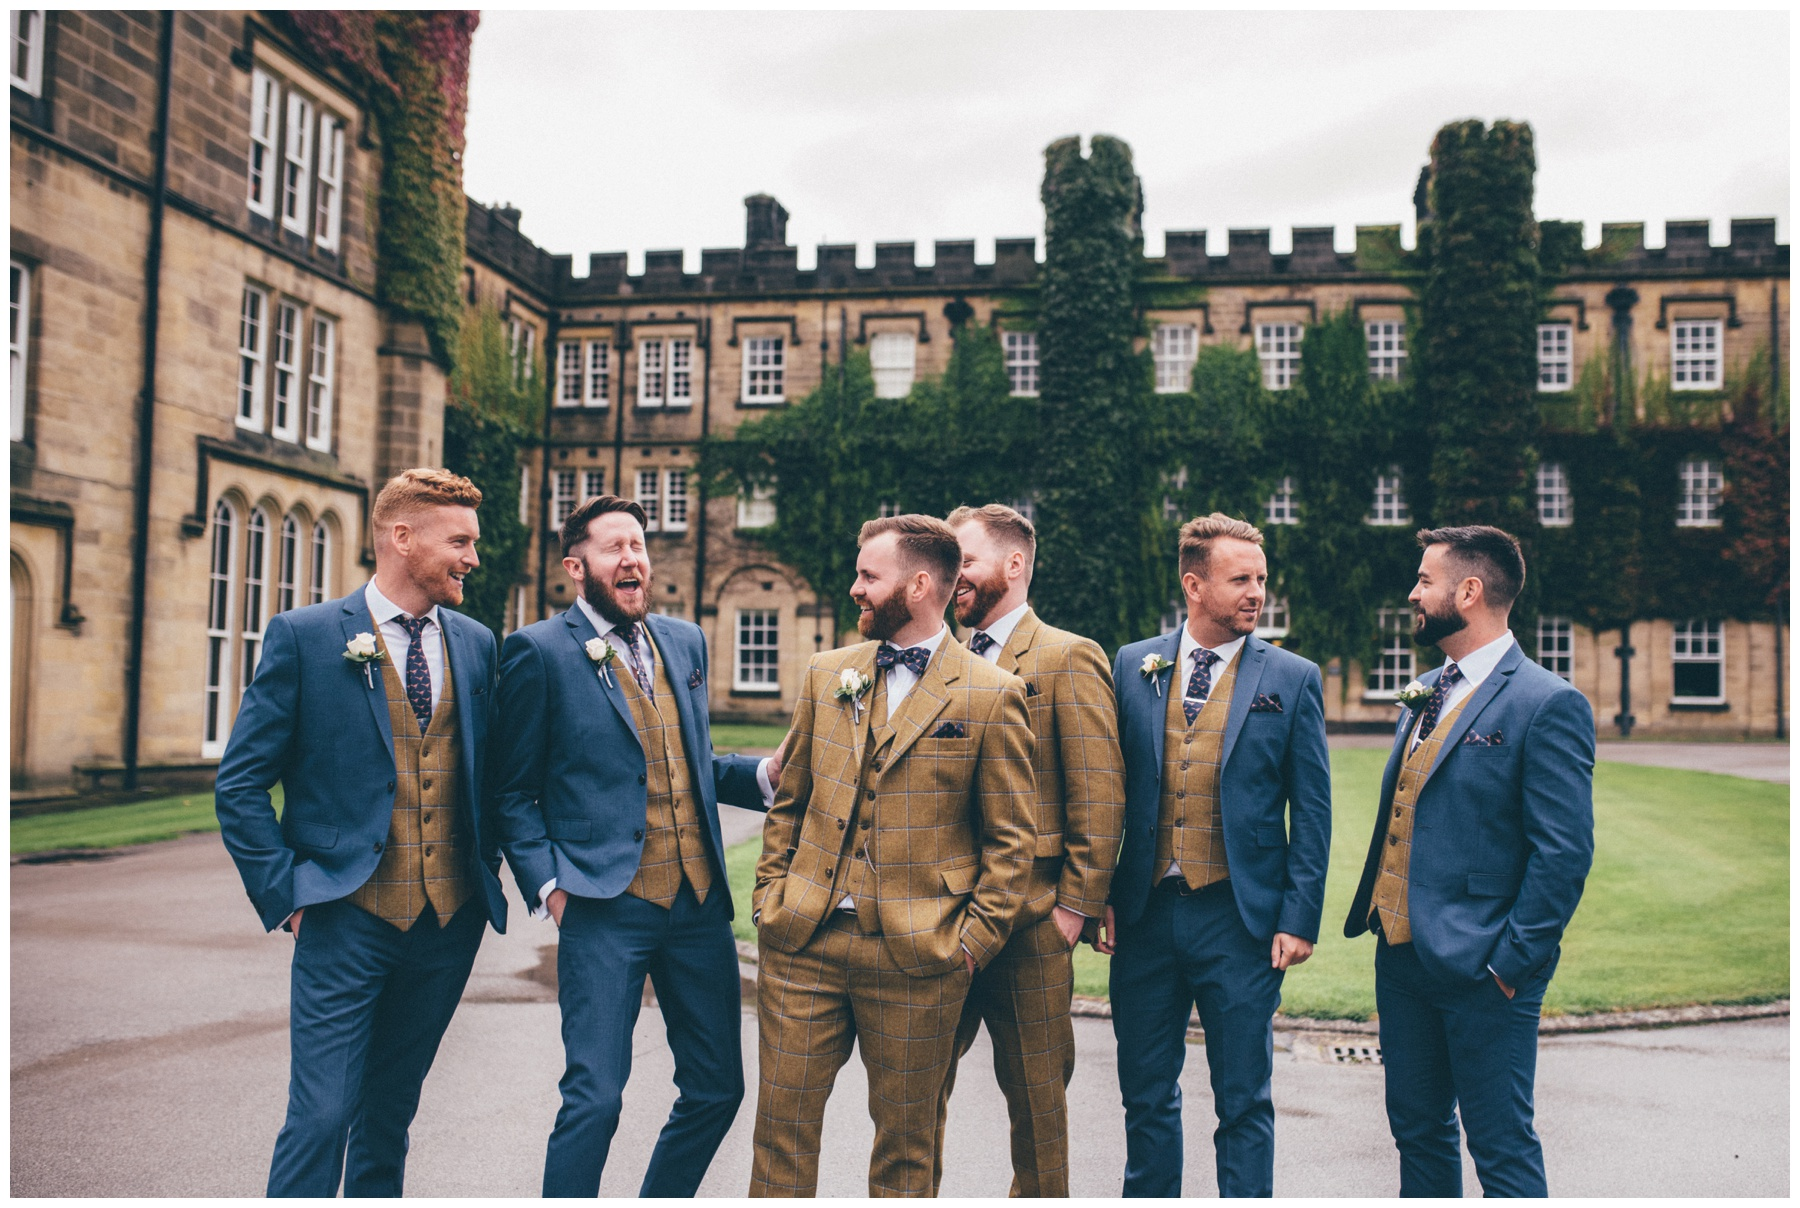 Groom and his groomsmen all dress in tweed at Swinton Park Estate wedding in Yorkshire.